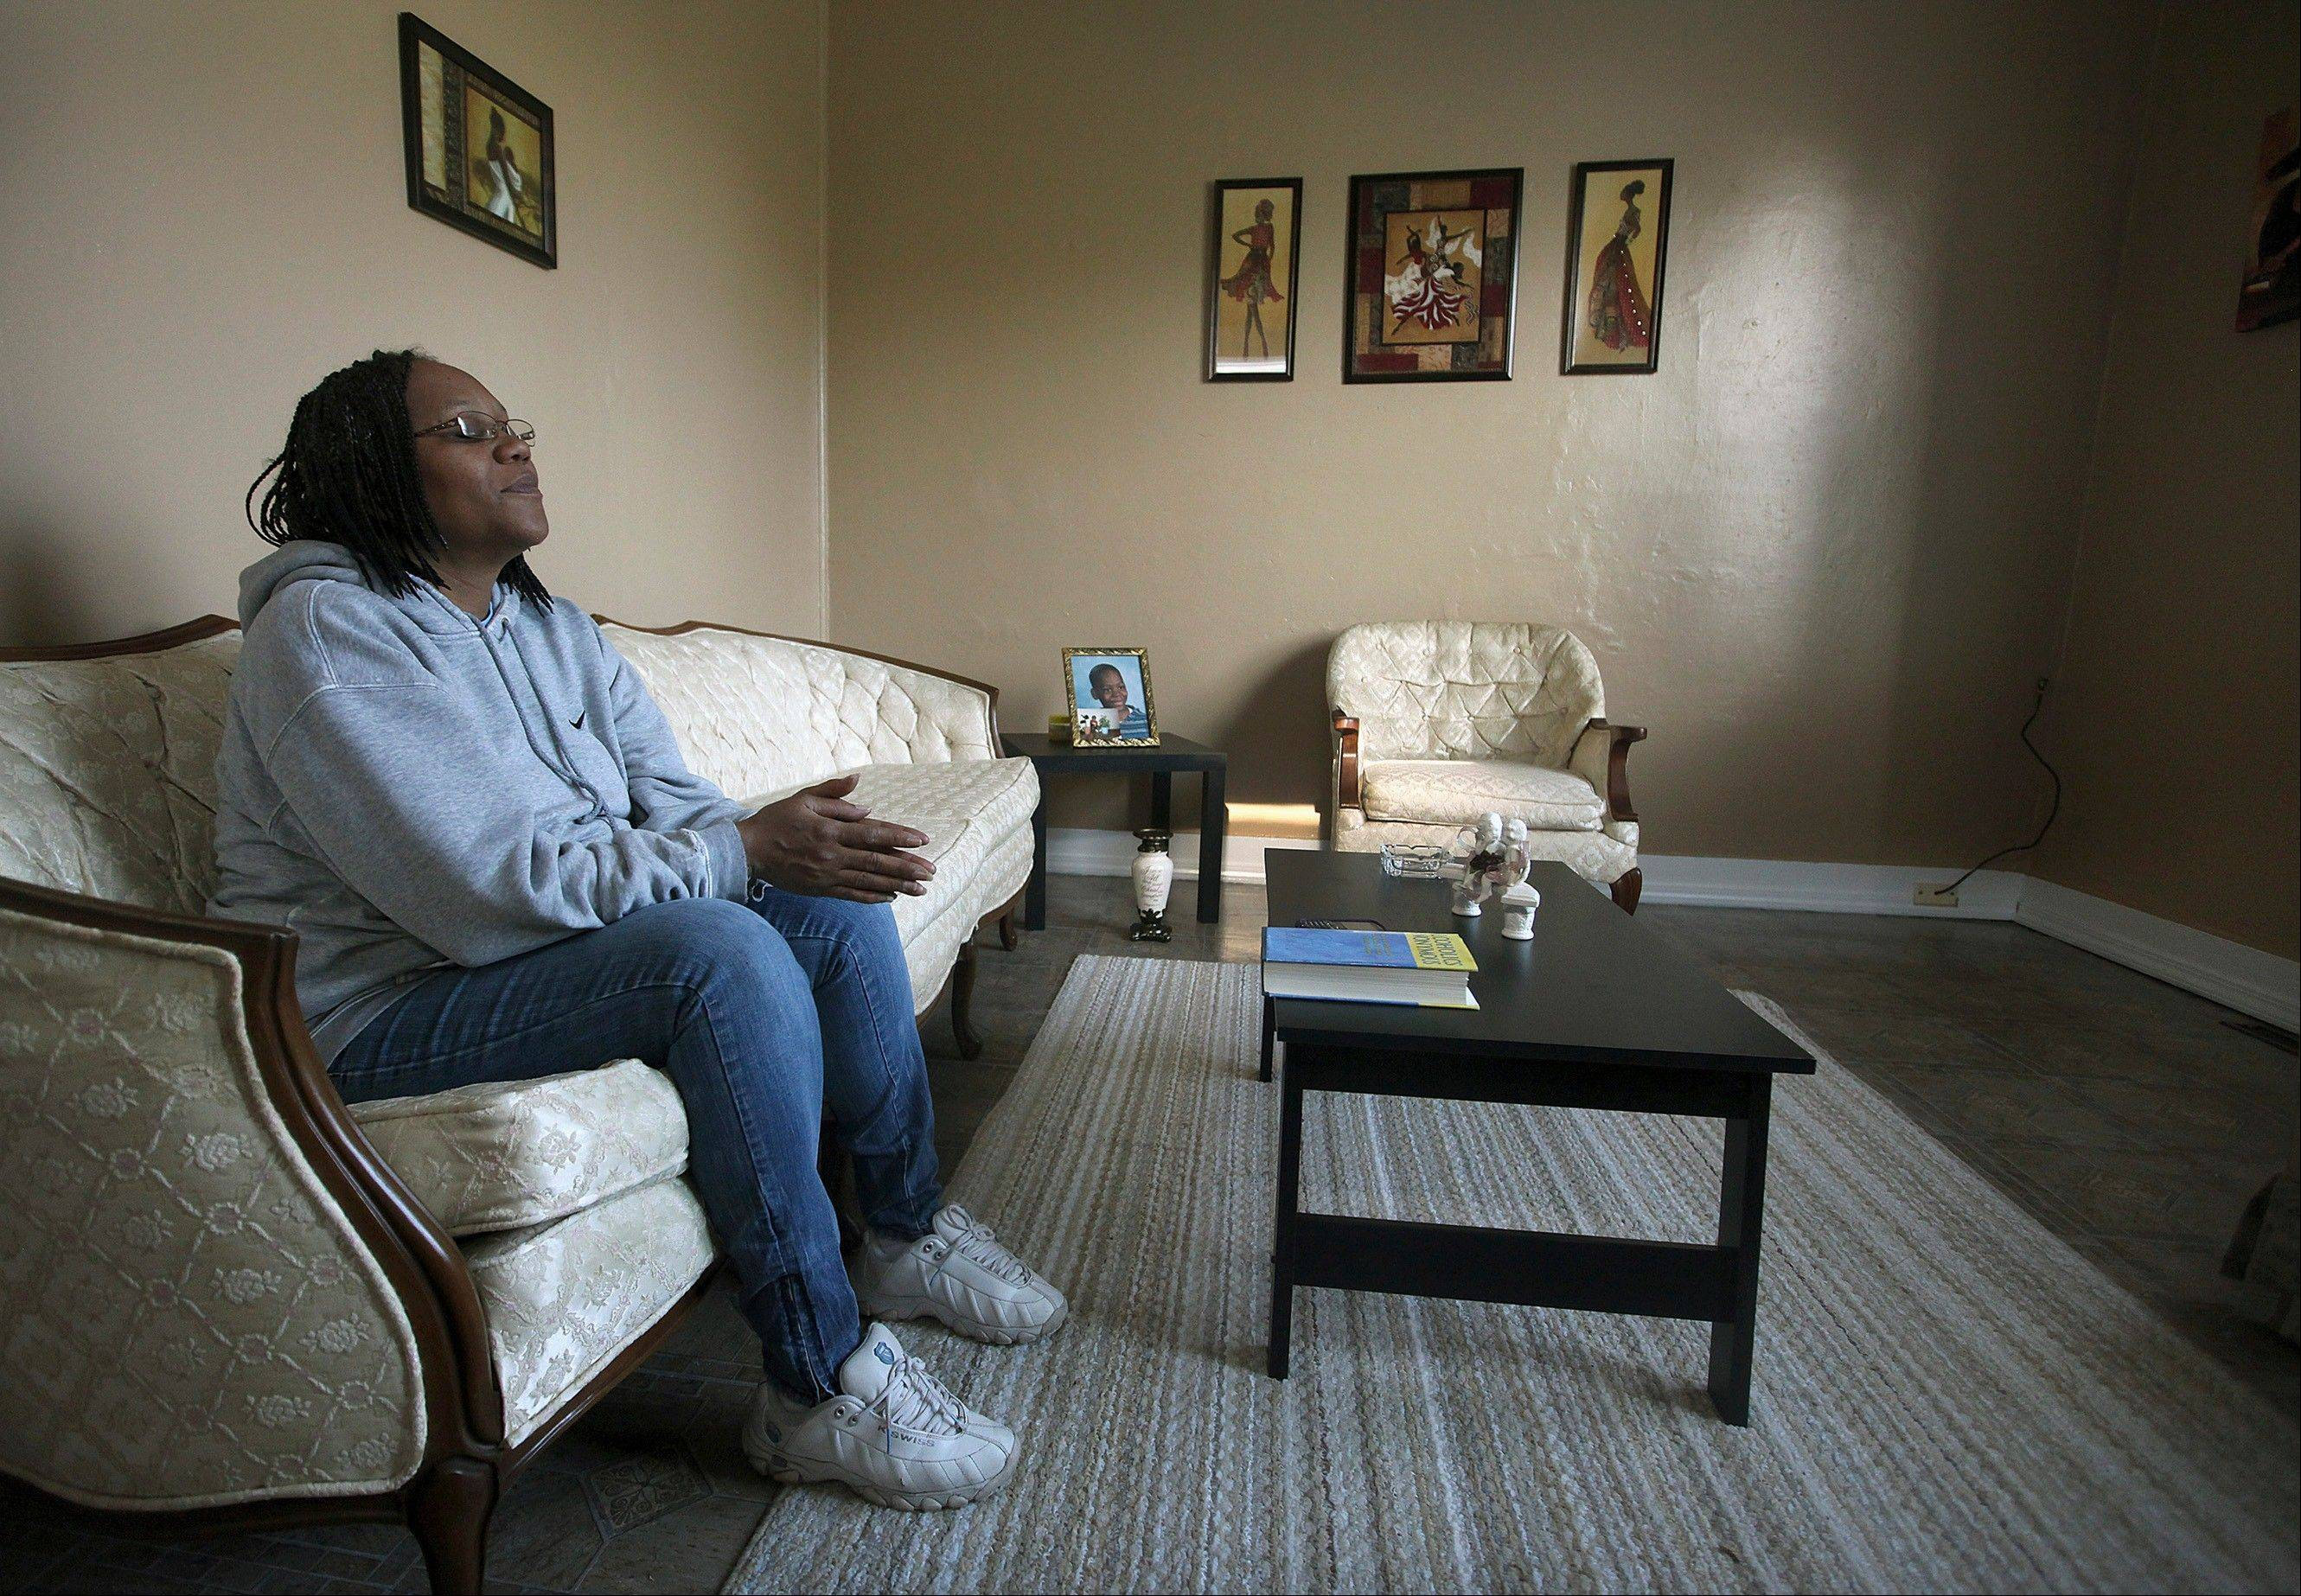 Recovering cocaine addict Maria Buchanan sits quietly in her living room praying and meditating, as she does each morning in Quincy, Ill. Maintaining spiritual fitness is a big part of Buchanan's recovery program.